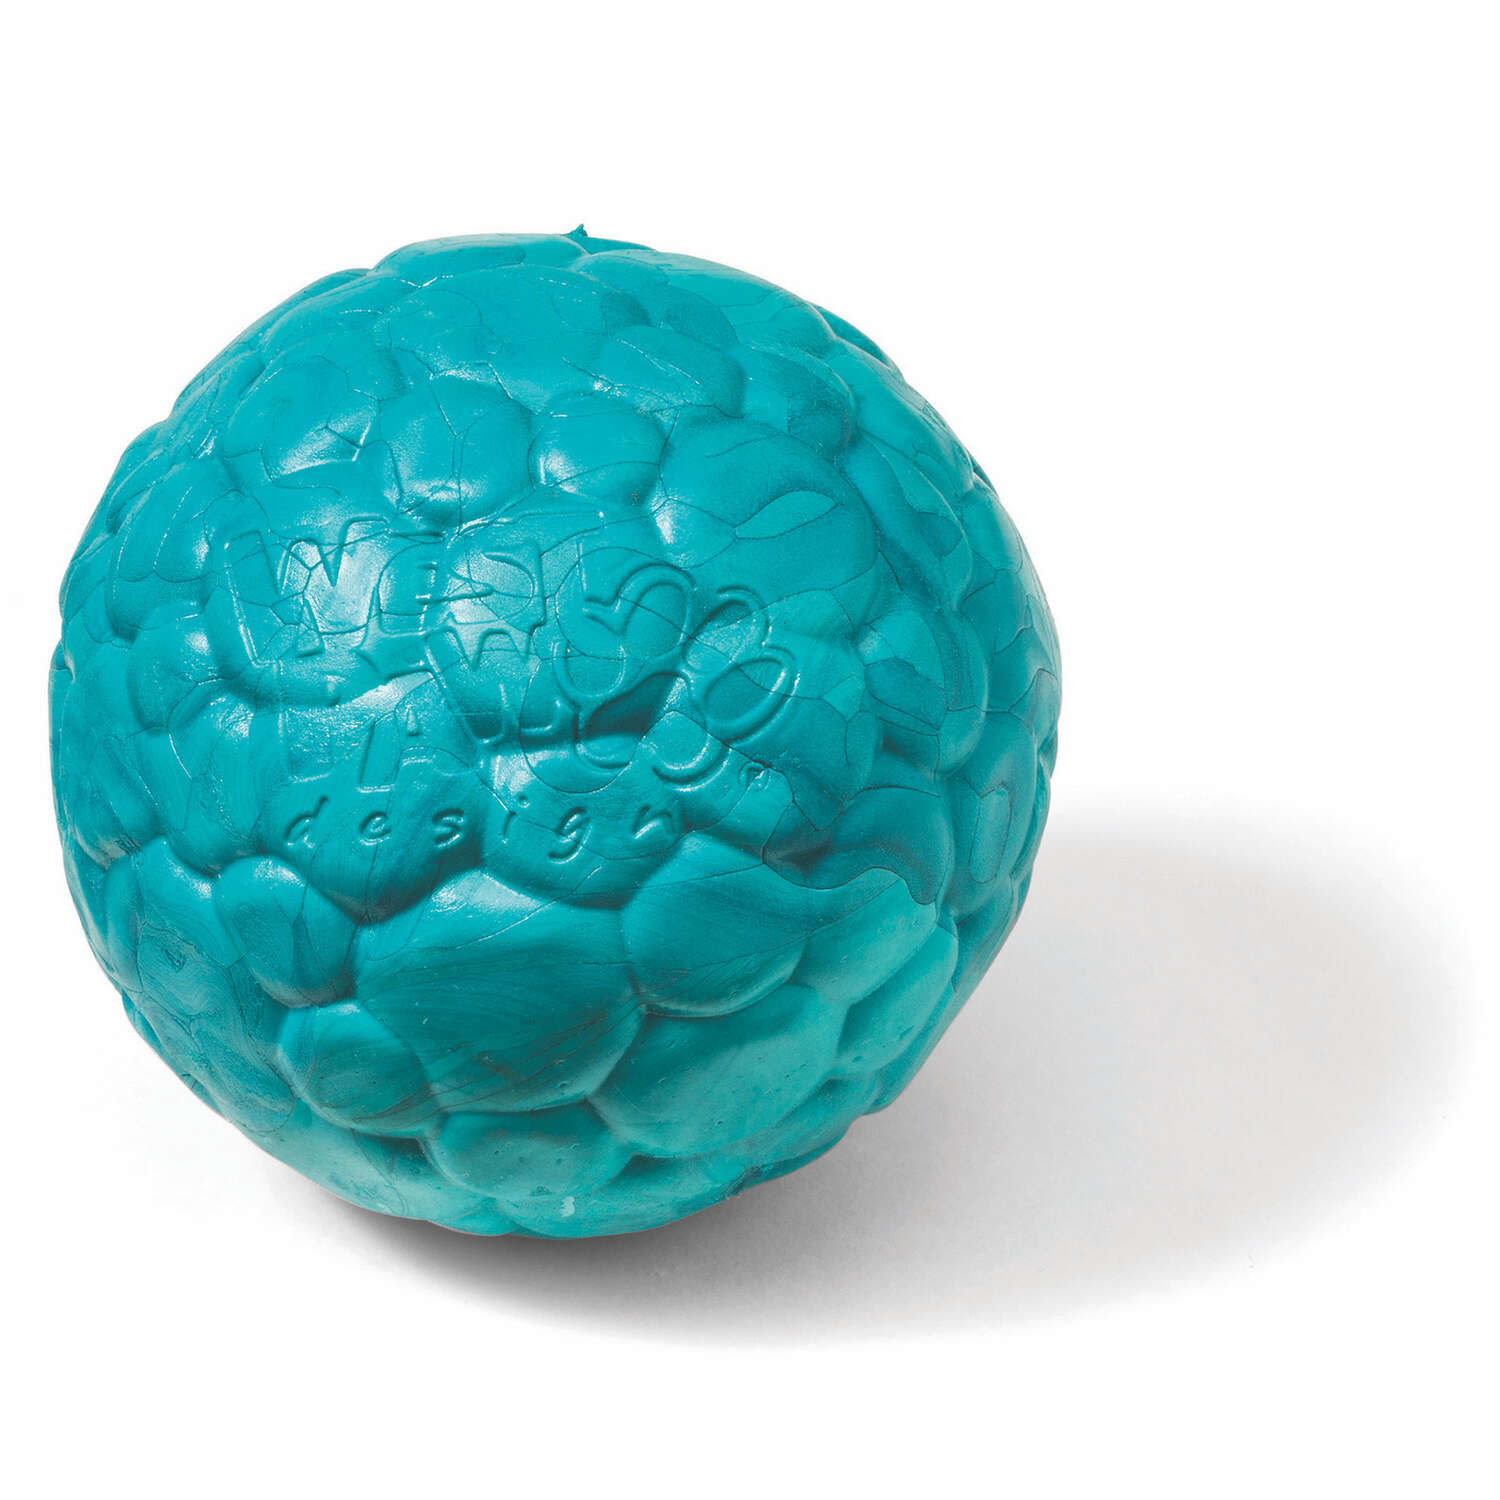 West Paw  Zogoflex Air  Blue  Synthetic Rubber  Ball Dog Toy  Medium  Boz Ball